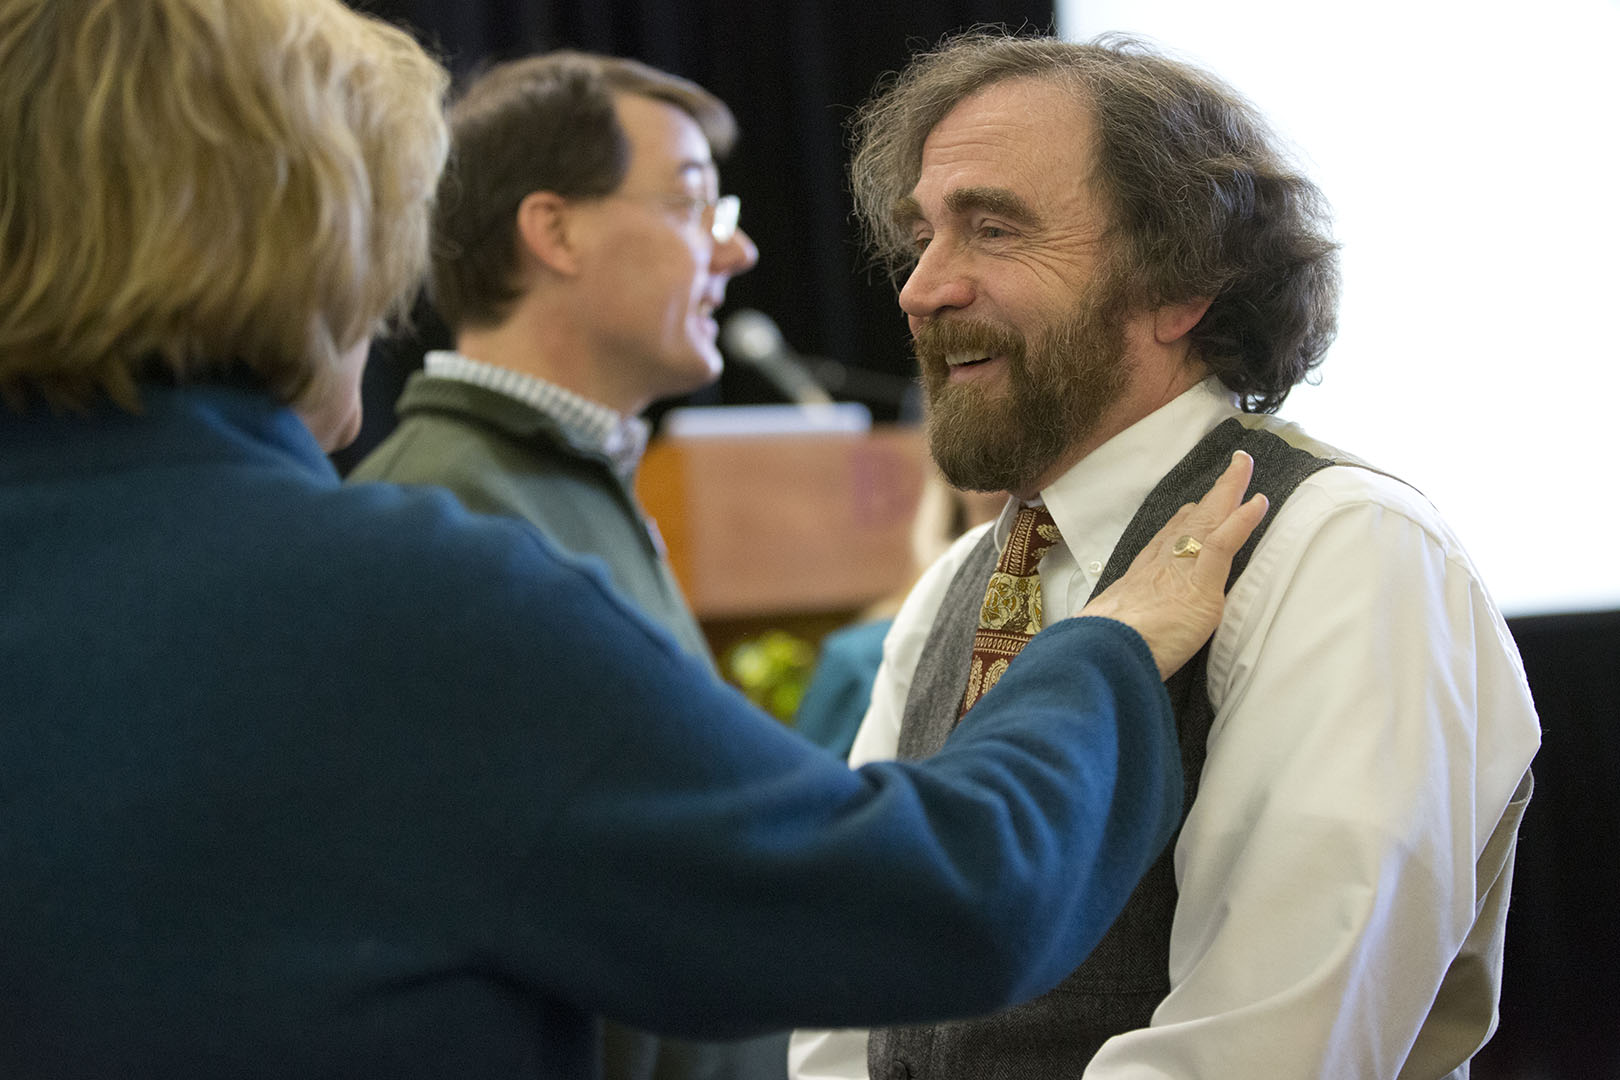 Glen Lawson receives congratulations from President Spencer at the celebration of his appointment as the Charles A. Dana Professor of Chemistry. (Phyllis Graber Jensen/Bates College.)